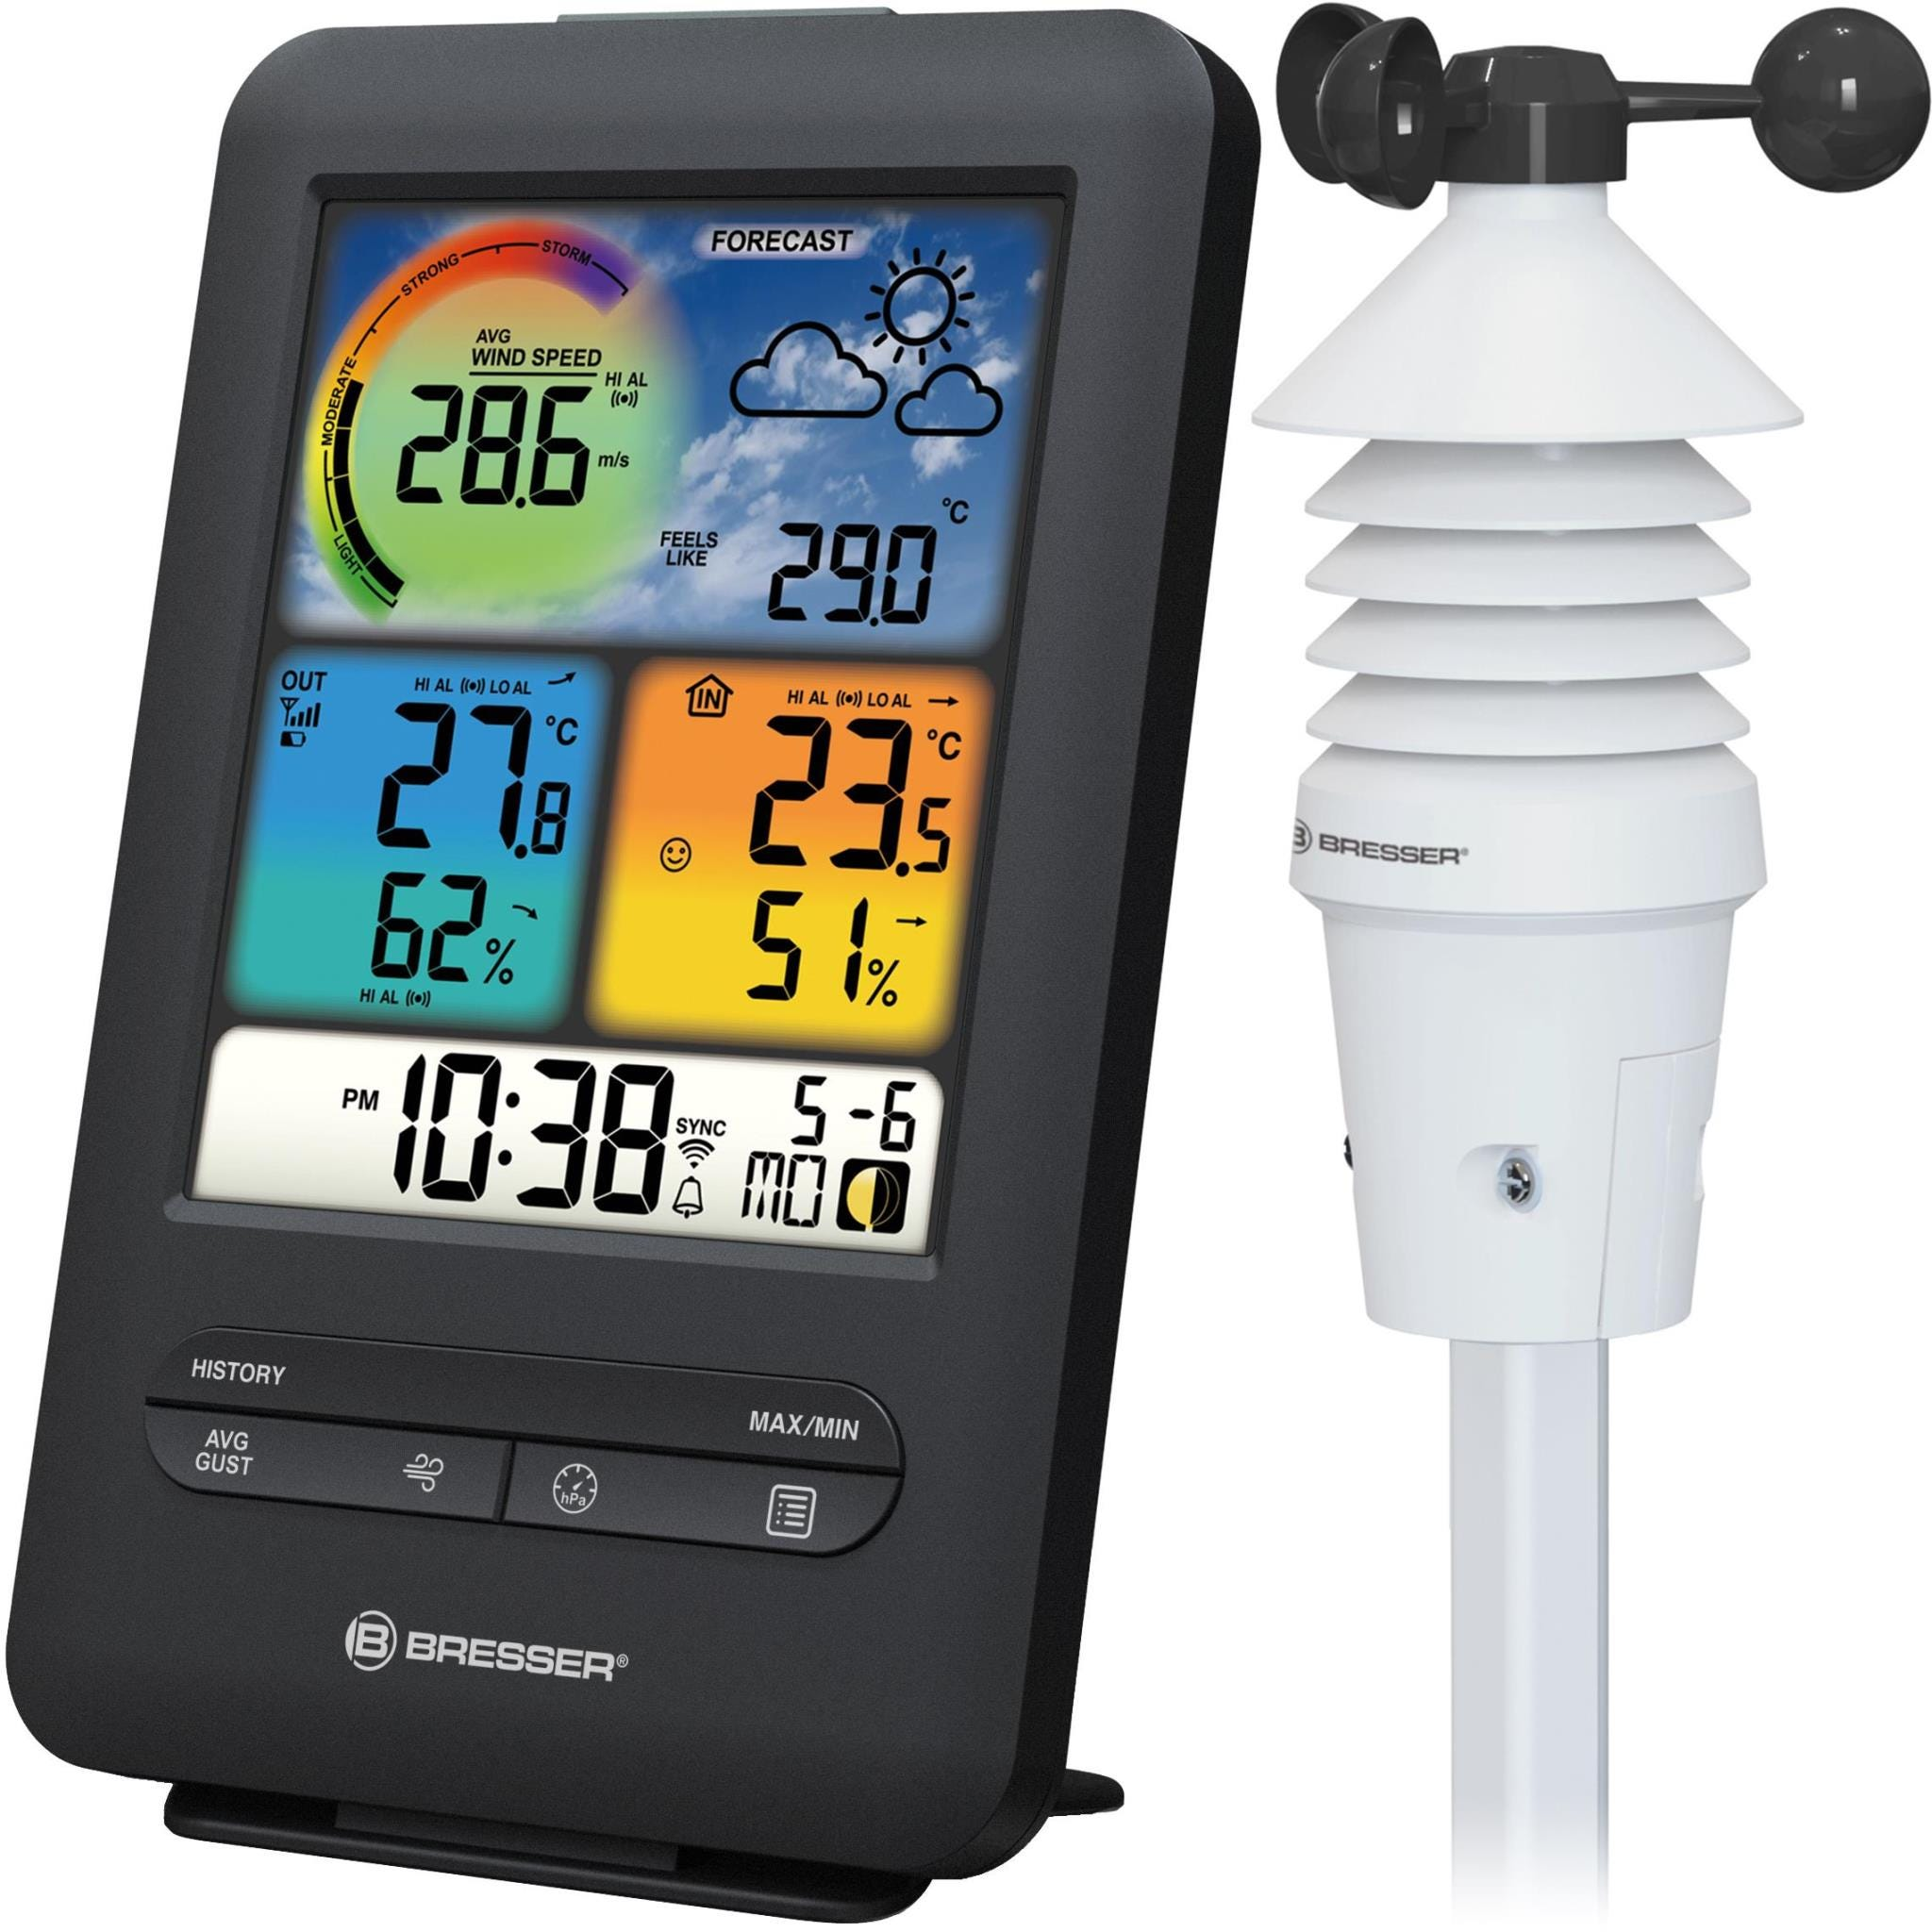 Bresser WiFi Colour Weather Station with 3-in-1 Wind Sensor